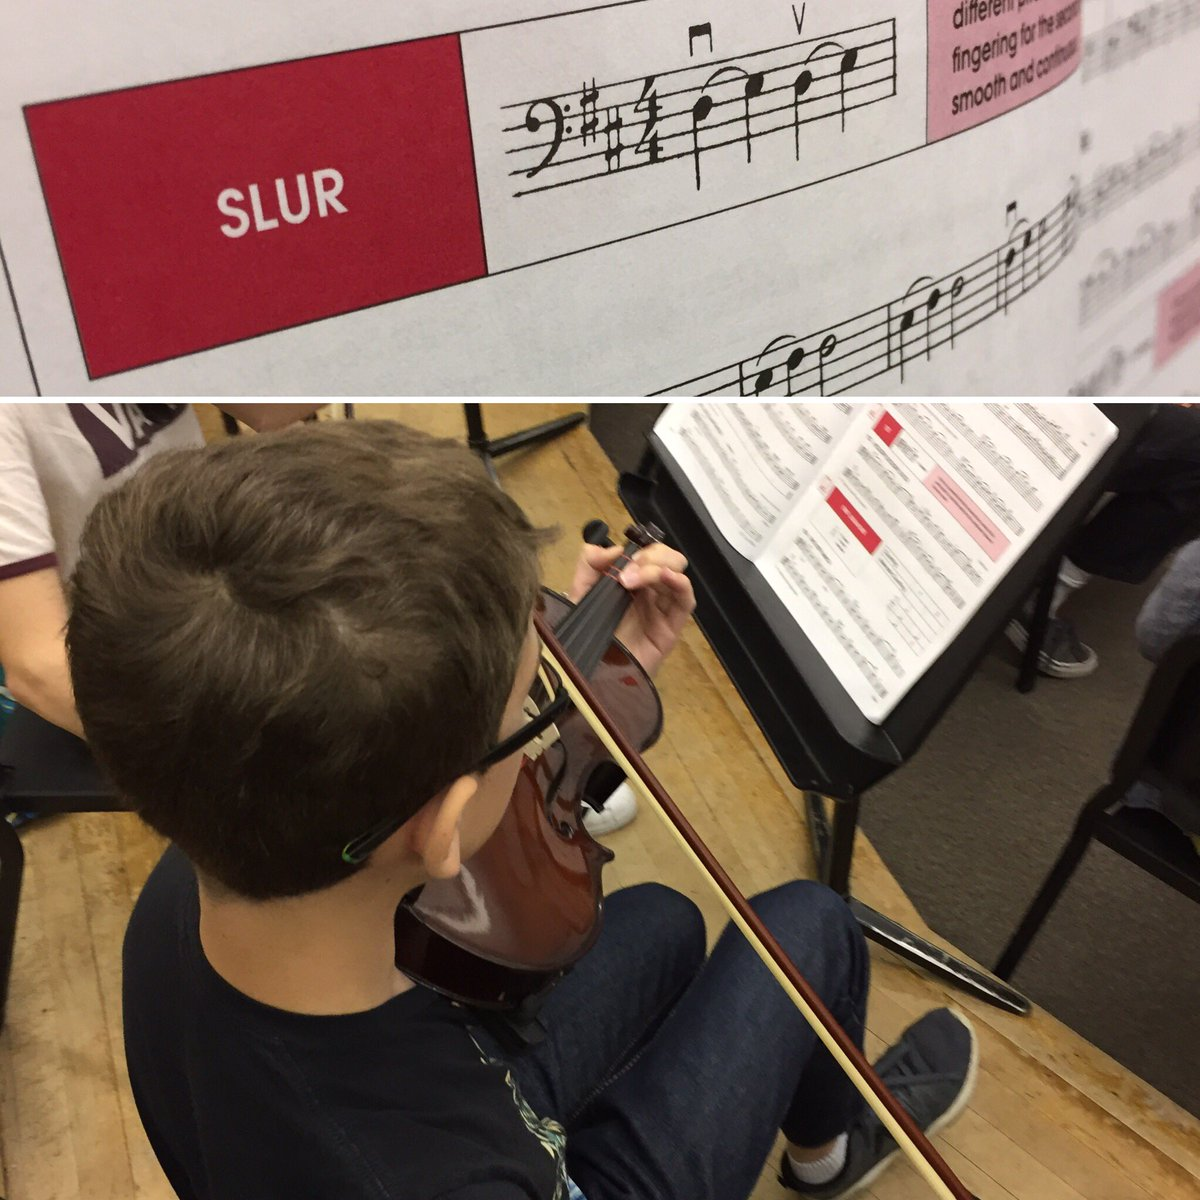 Content vocabulary in action. @PHill_Rams #Orchestra <br>http://pic.twitter.com/oKNOQbtO27